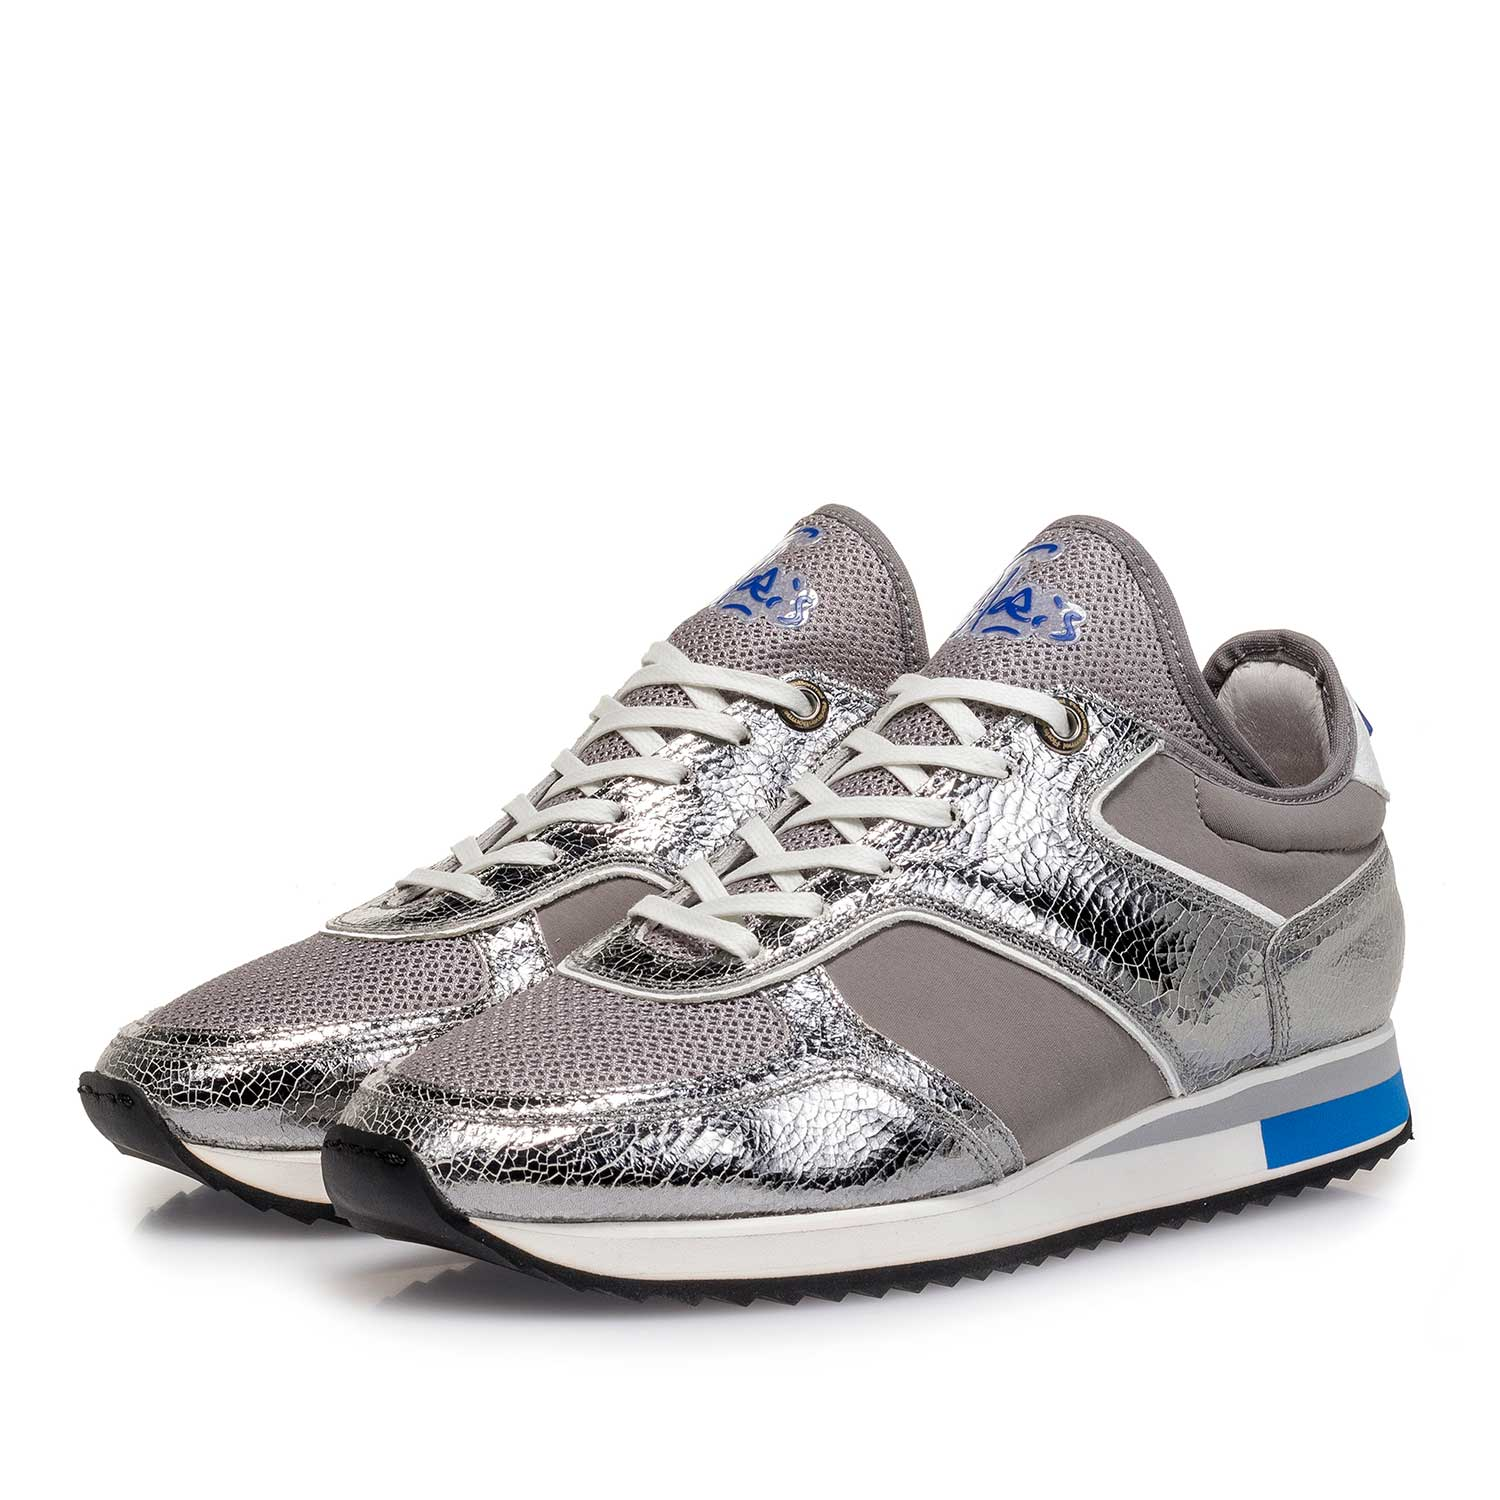 85261/06 - Dark silver metallic leather sneaker